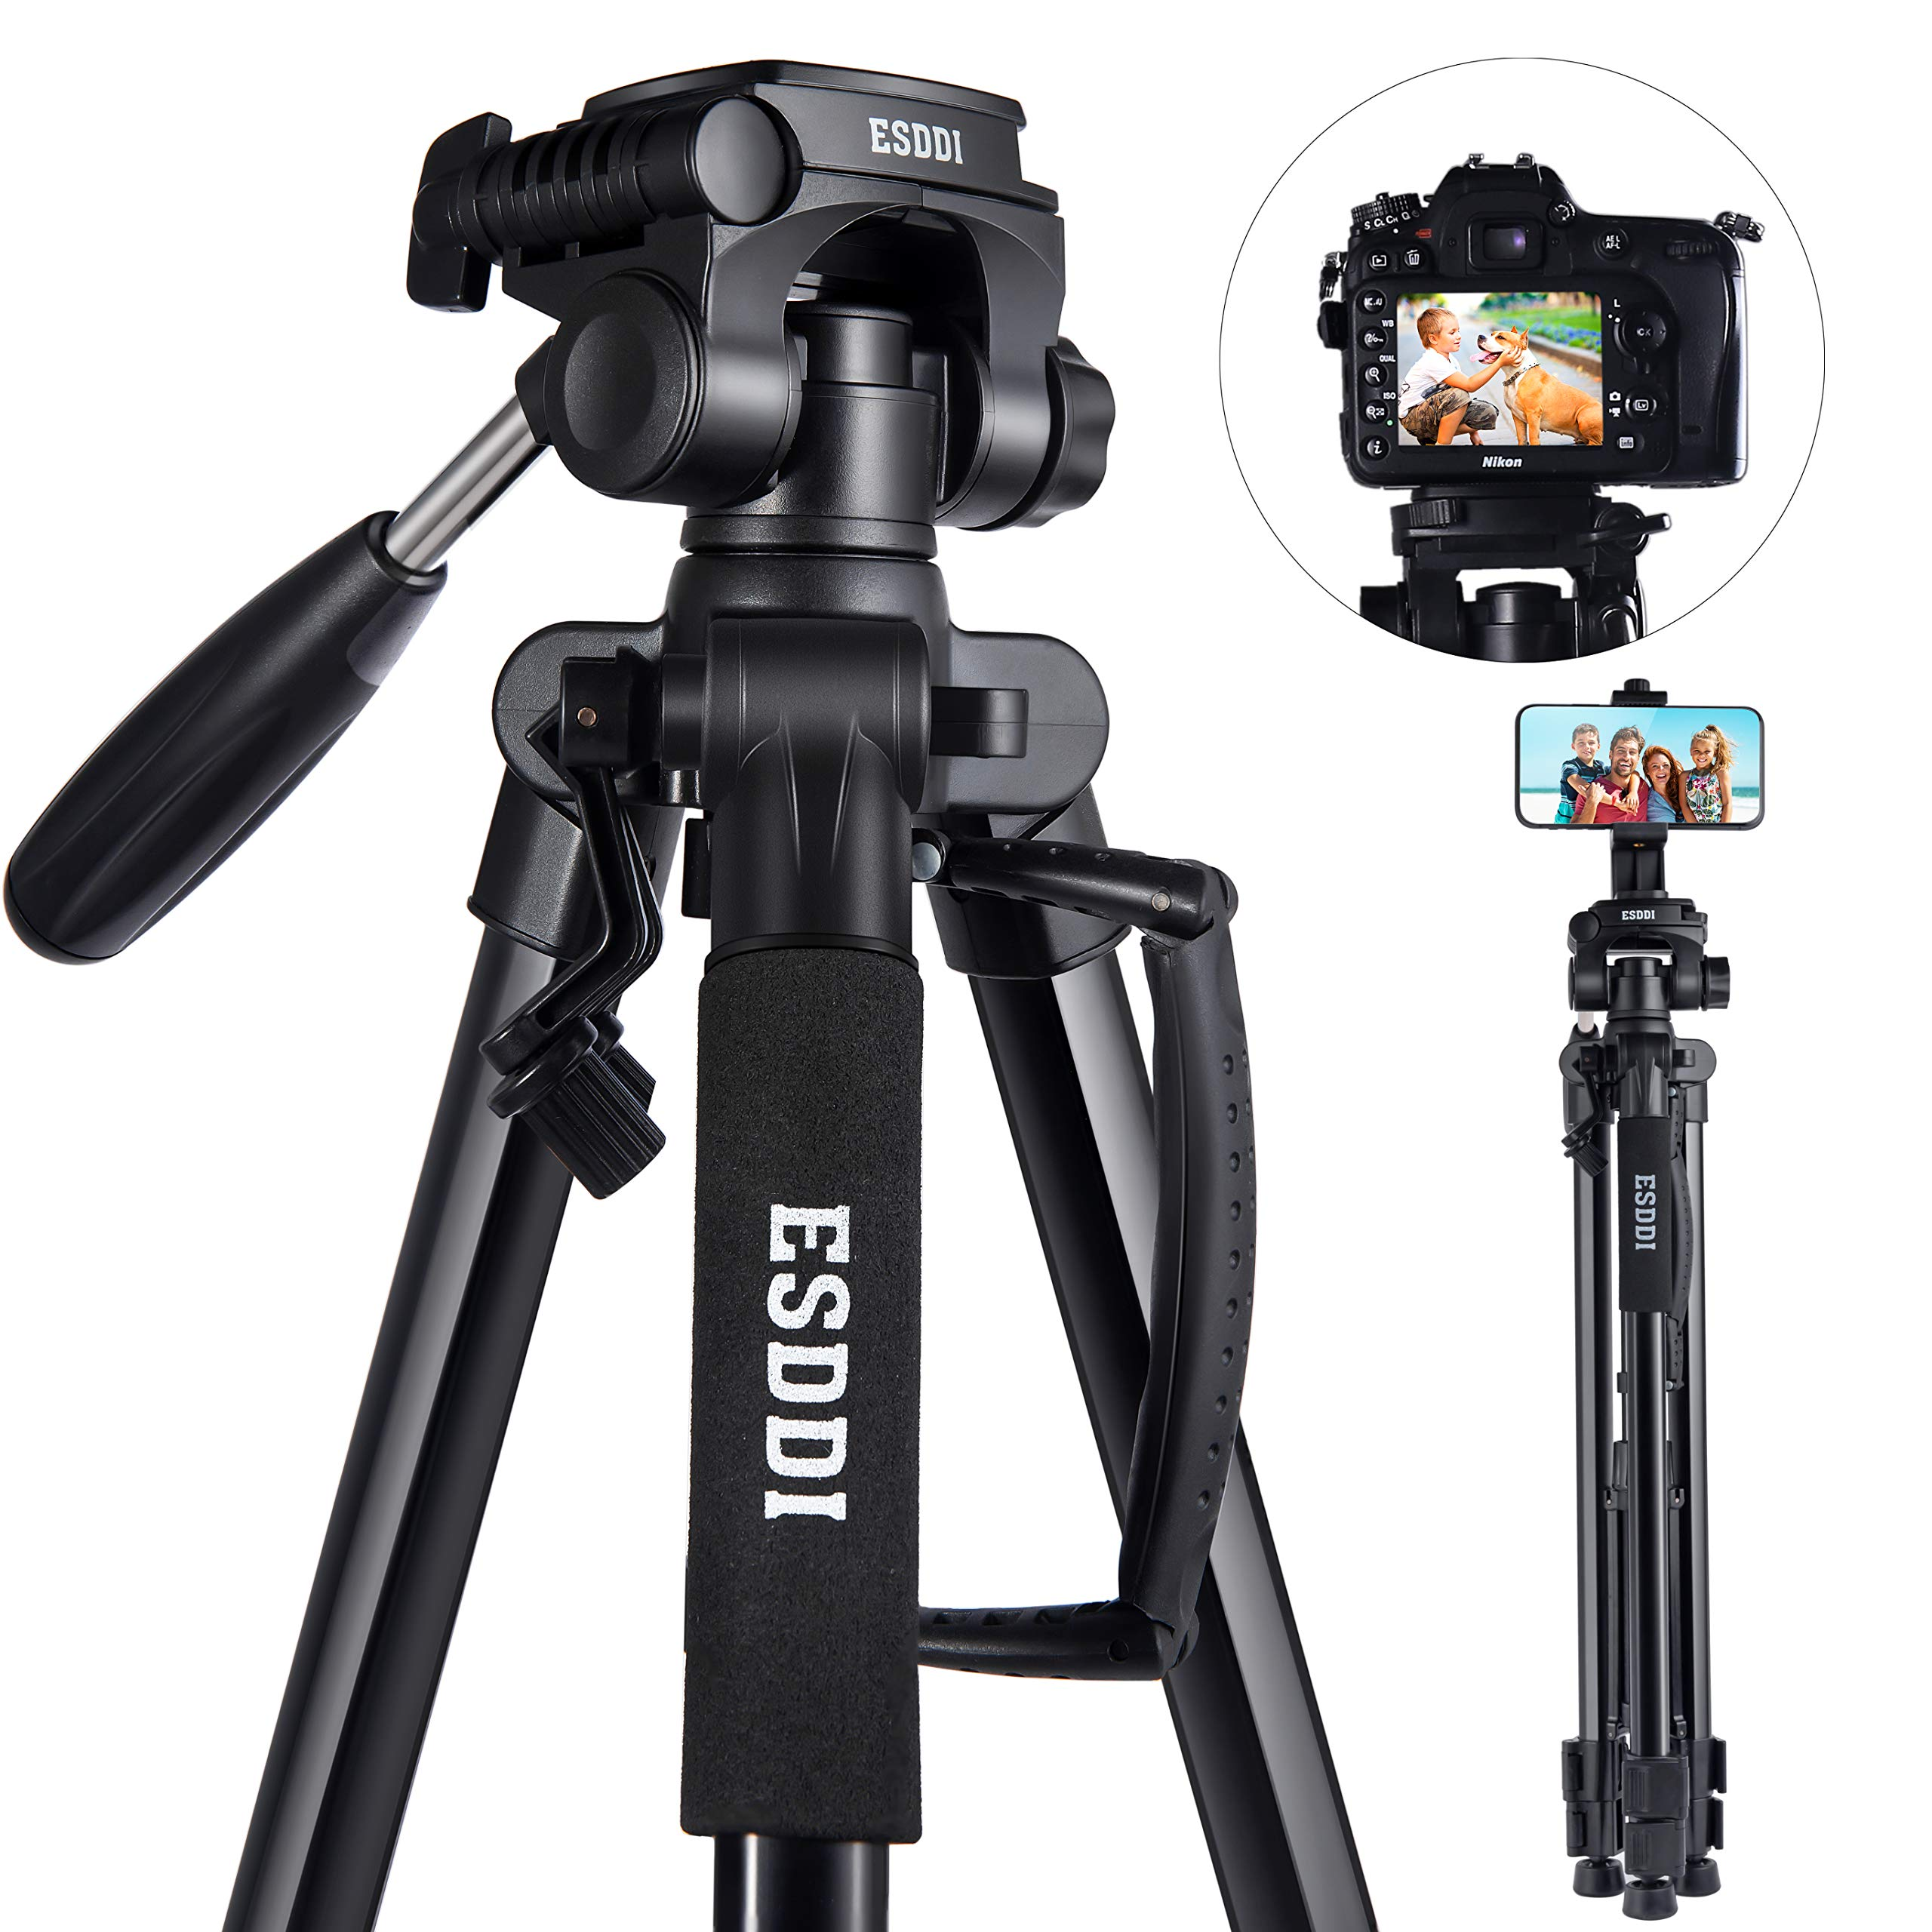 Amazon Com Esddi Updated Camera Tripod 67 170cm Lightweight Portable Travel Tripod For Camera With Phone Holder And Quick Release Plate For Canon Nikon Sony Samsung Olympus With Carrying Bag Load Capacity 11lb